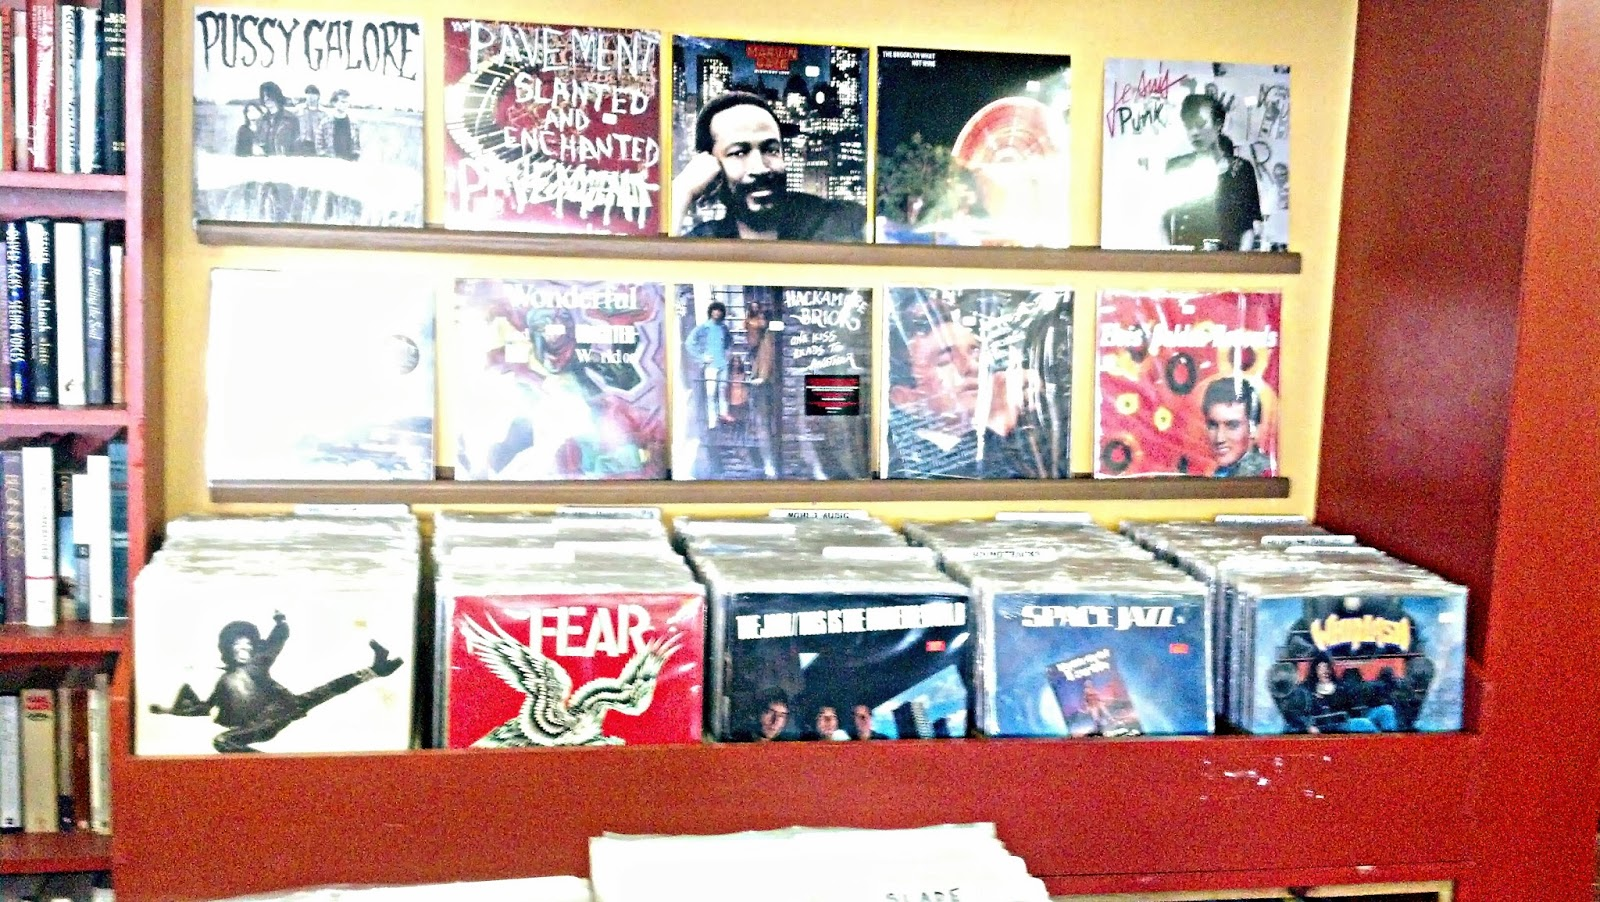 Jack's Rhythms New Paltz New York - records for sale